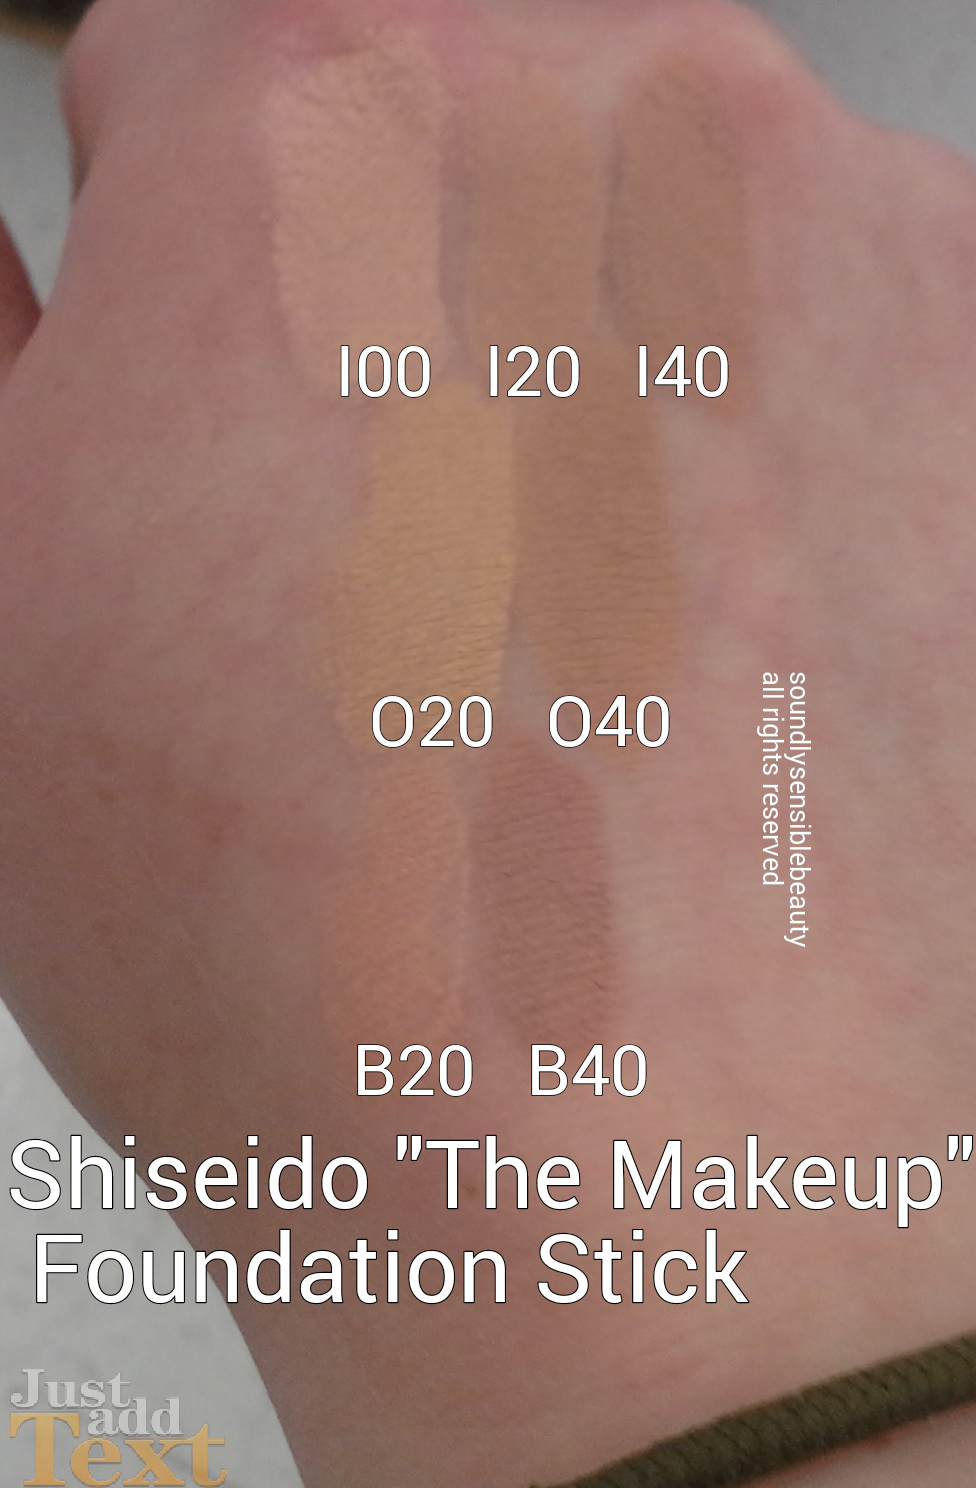 The Makeup Stick Foundation by Shiseido #3